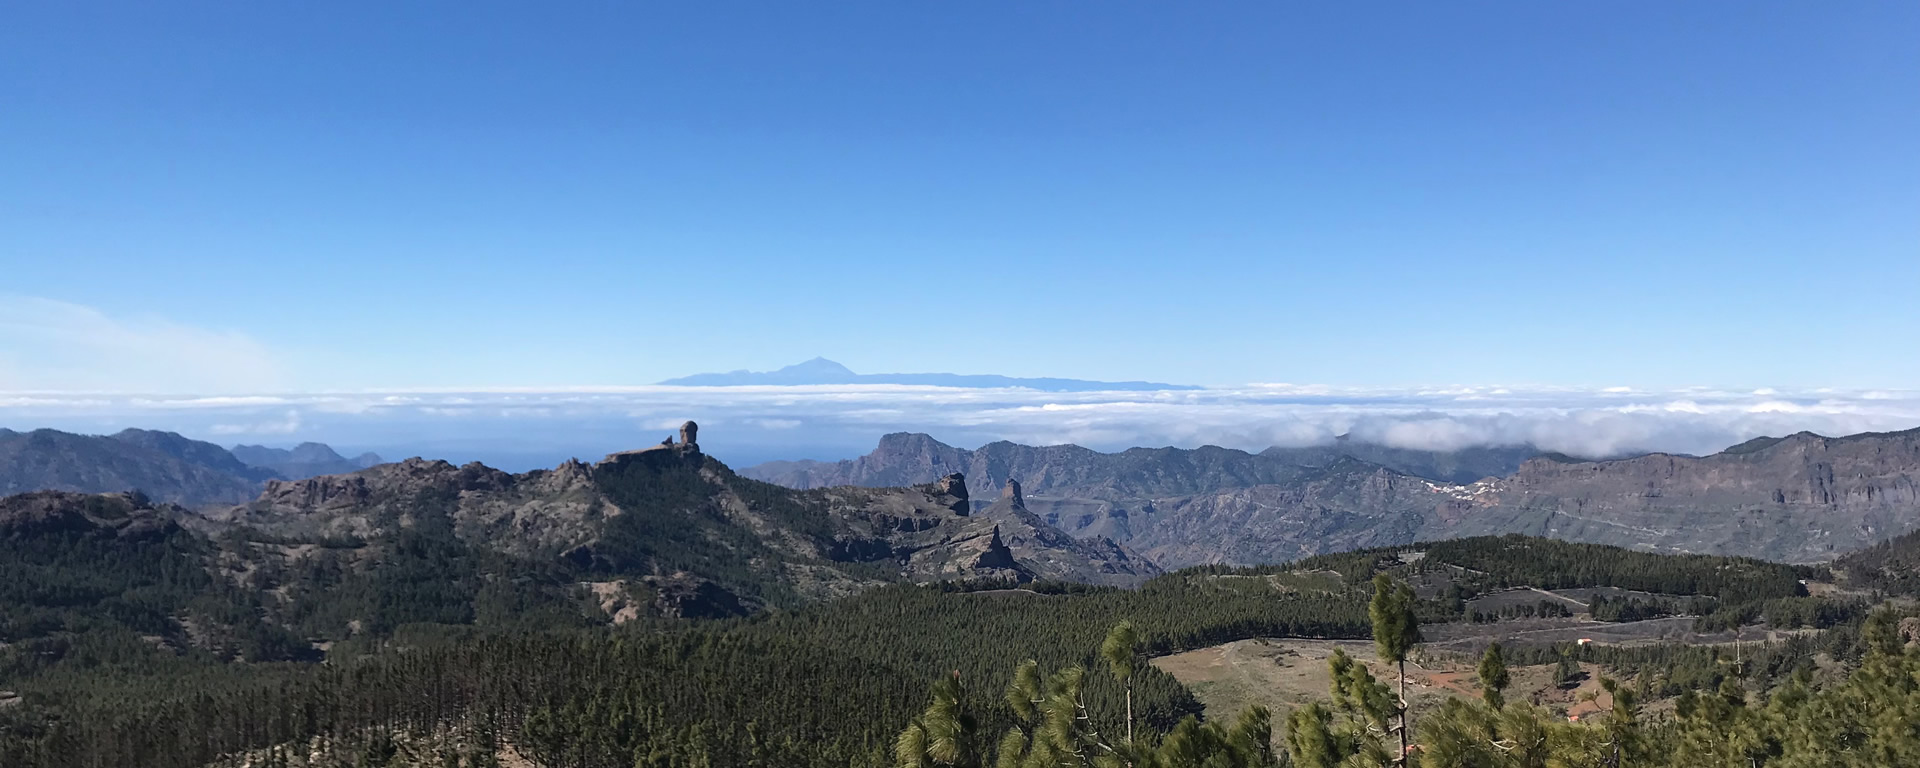 Gran Canaria panorama with our team